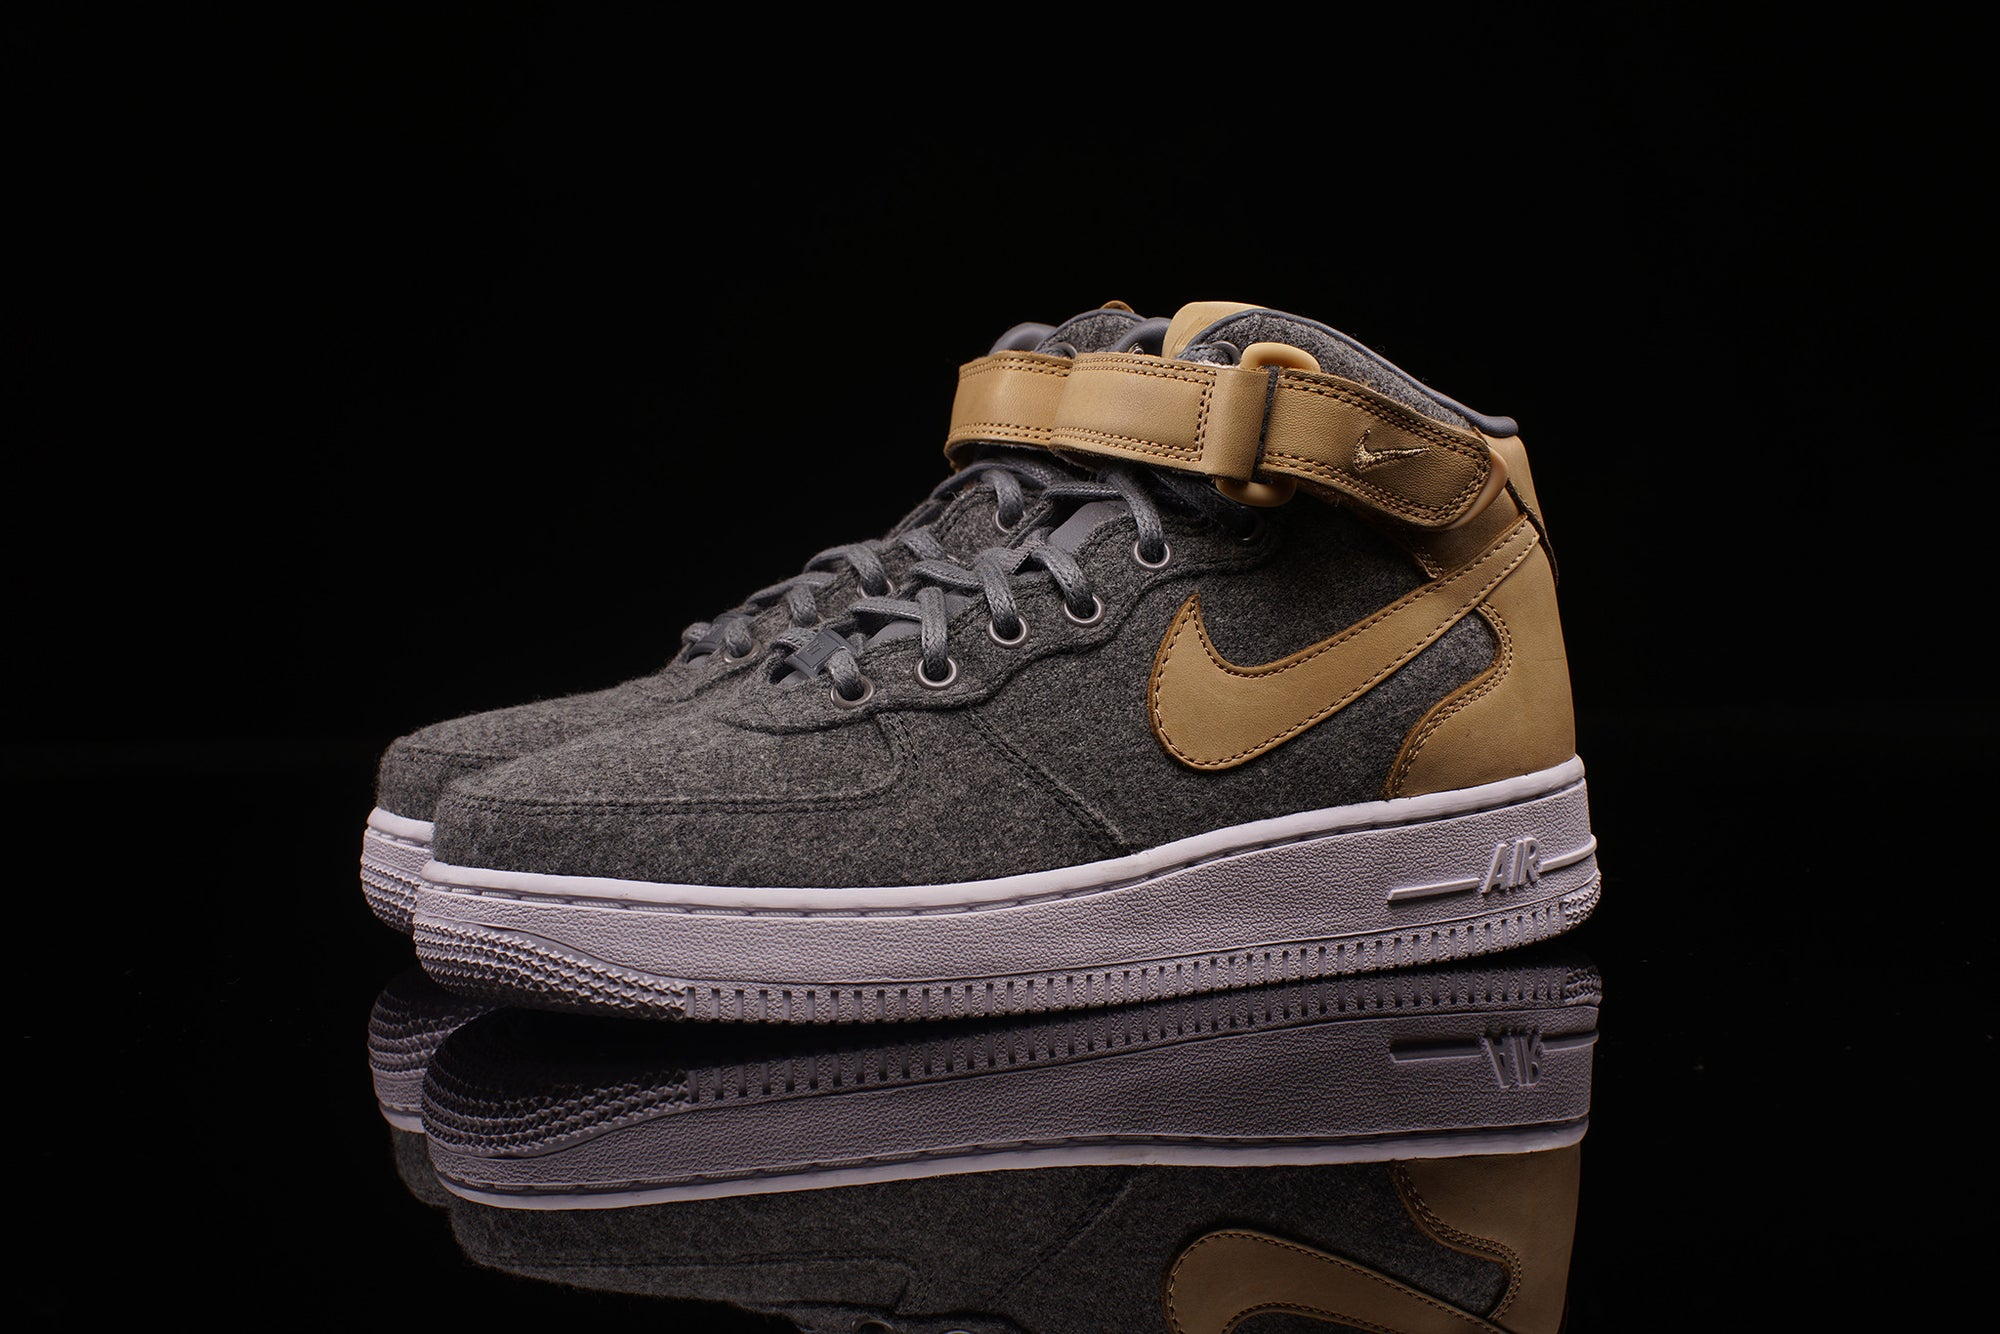 NIKE WOMENS AIR FORCE 1 '07 MID LTHR PRM